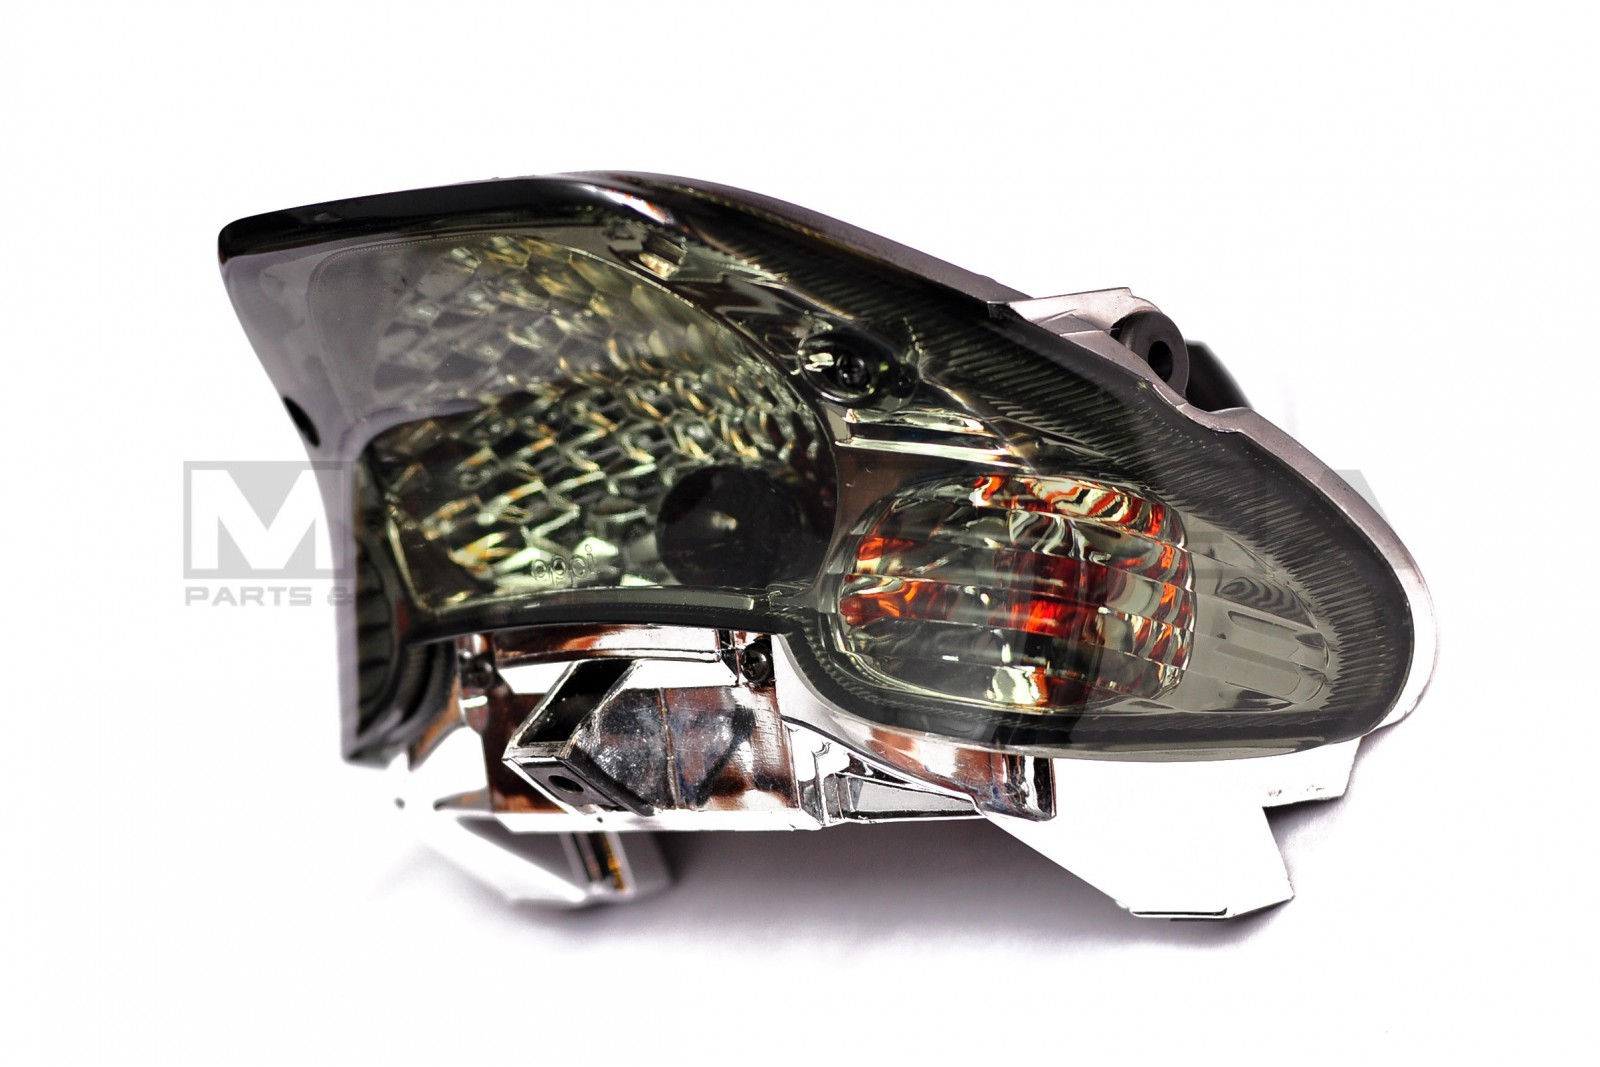 Honda wave parts and accessories